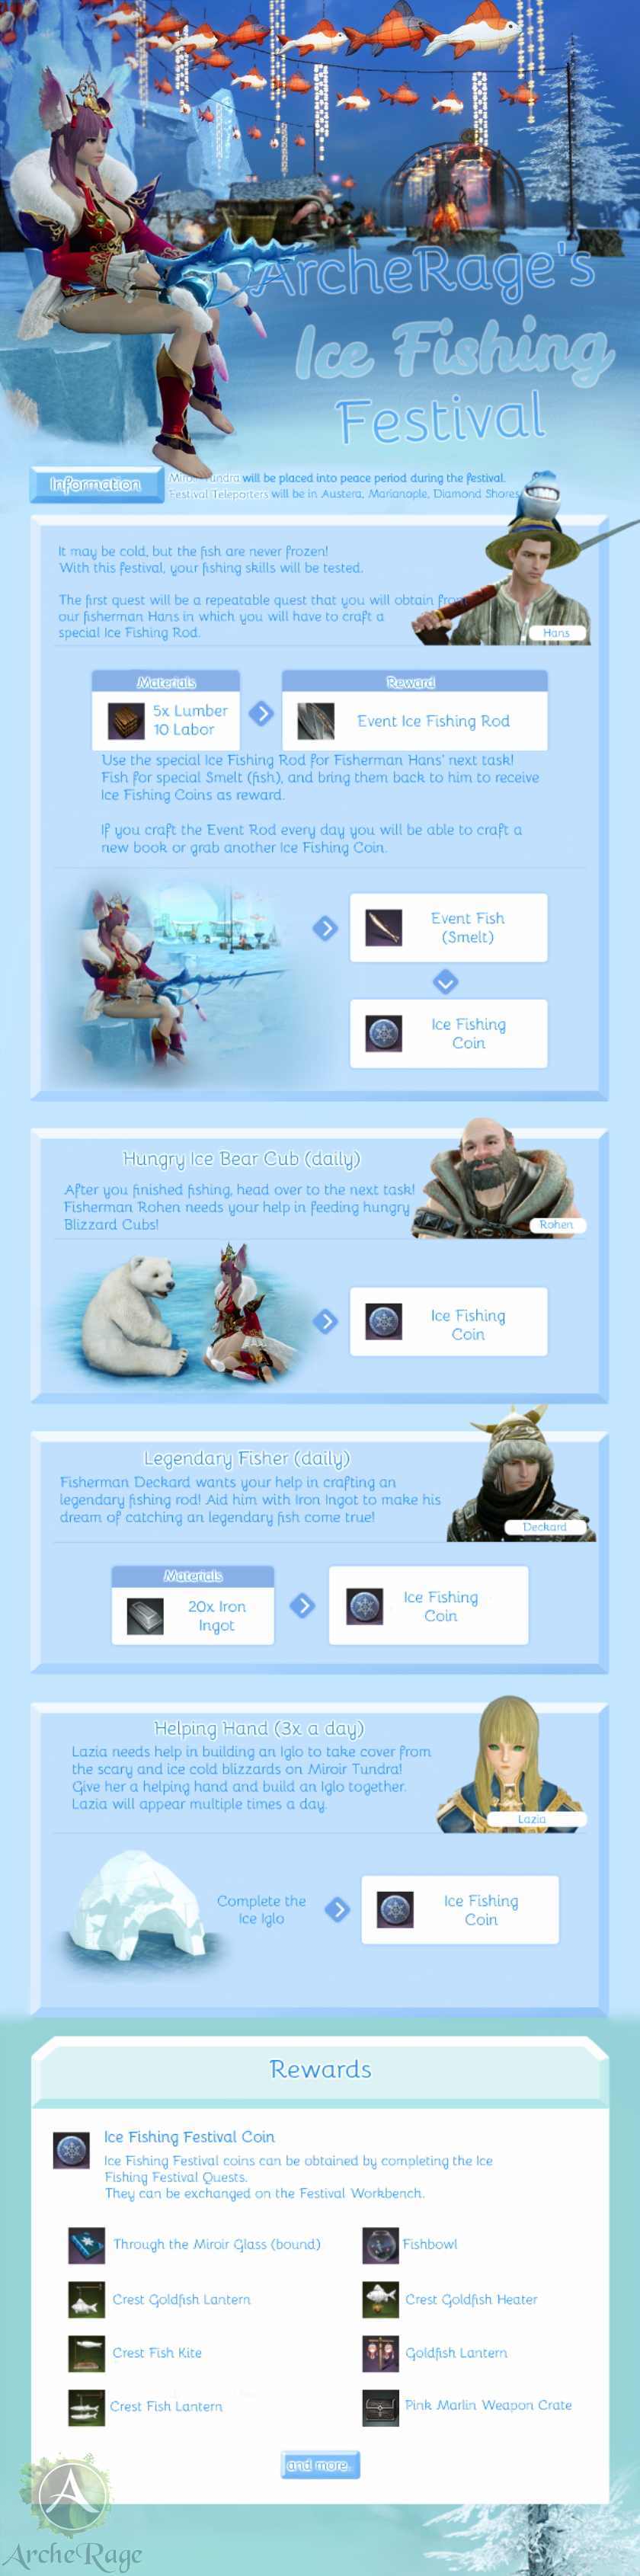 iceguideFIN.png